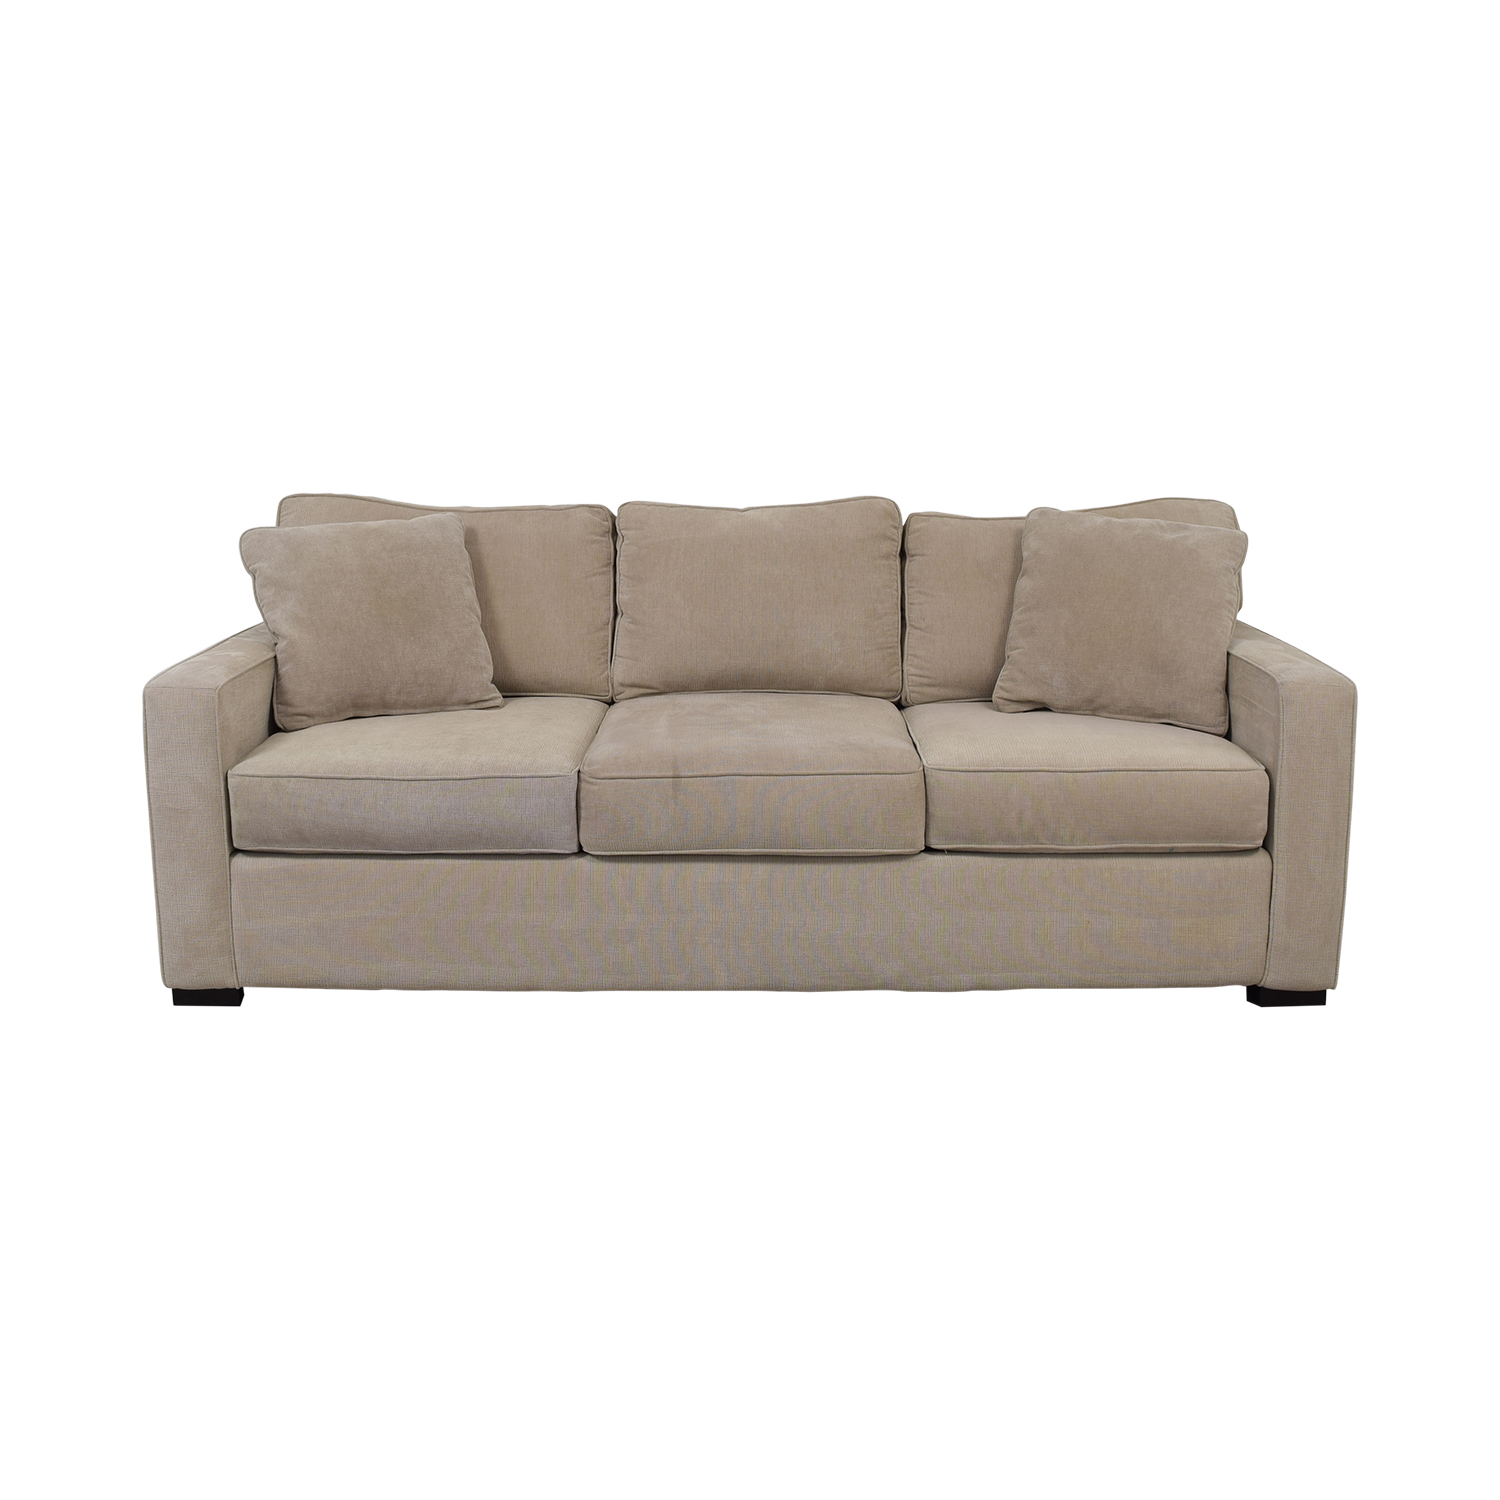 Macy's Macy's Radley Beige Three-Cushion Sofa beige